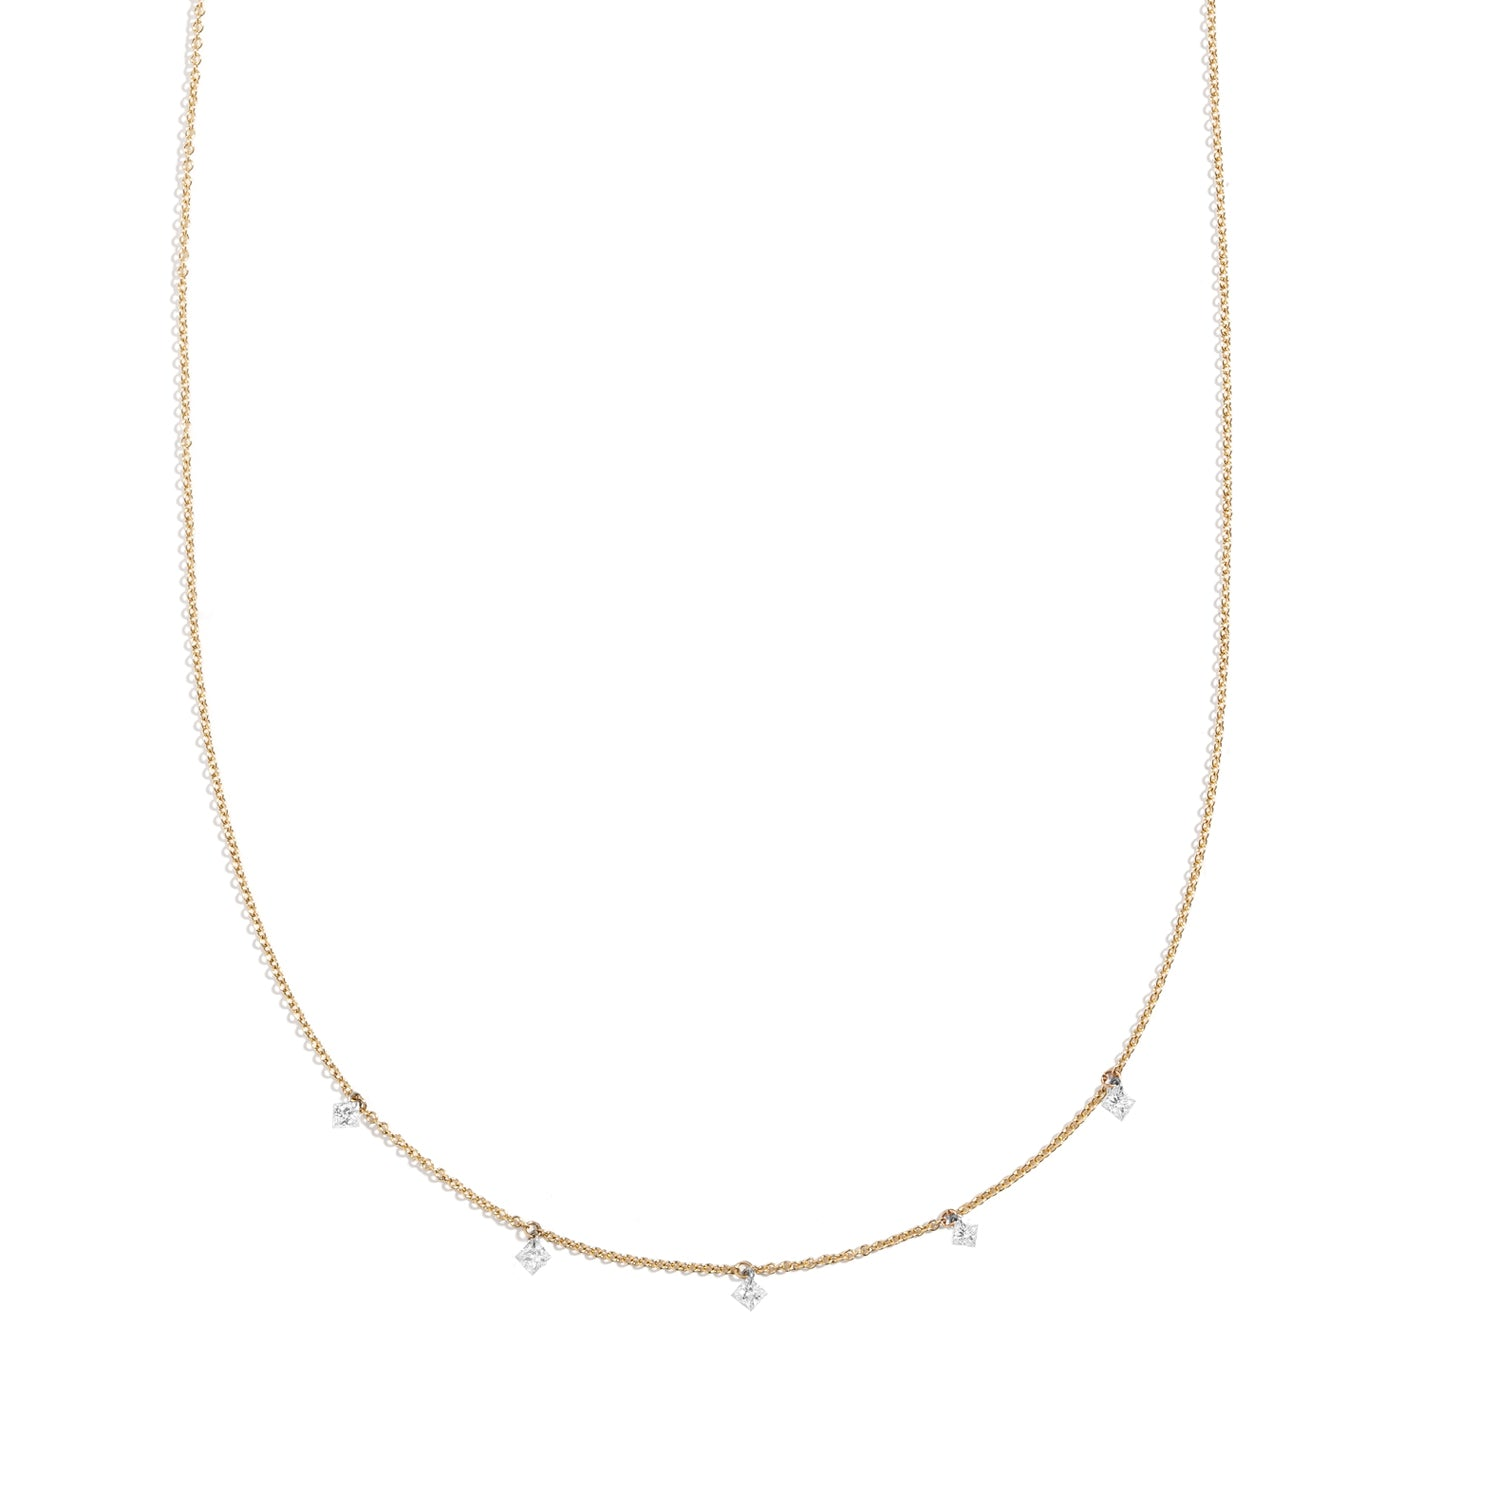 Nuwa Necklace ~ Floating Princess Cut Diamond Necklace